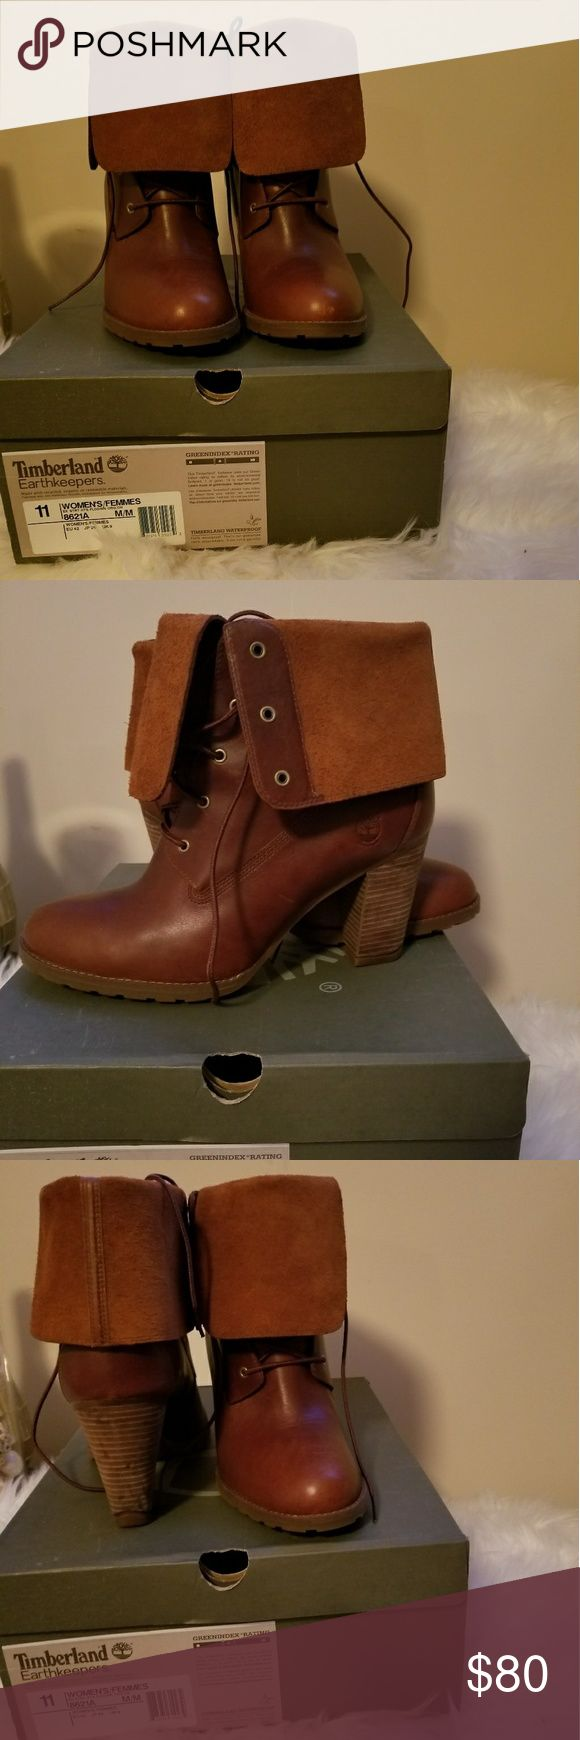 Timberland ankle boots 3 inch heel leather ankle boot, worn twice, small scratch on toe Timberland Shoes Ankle Boots & Booties